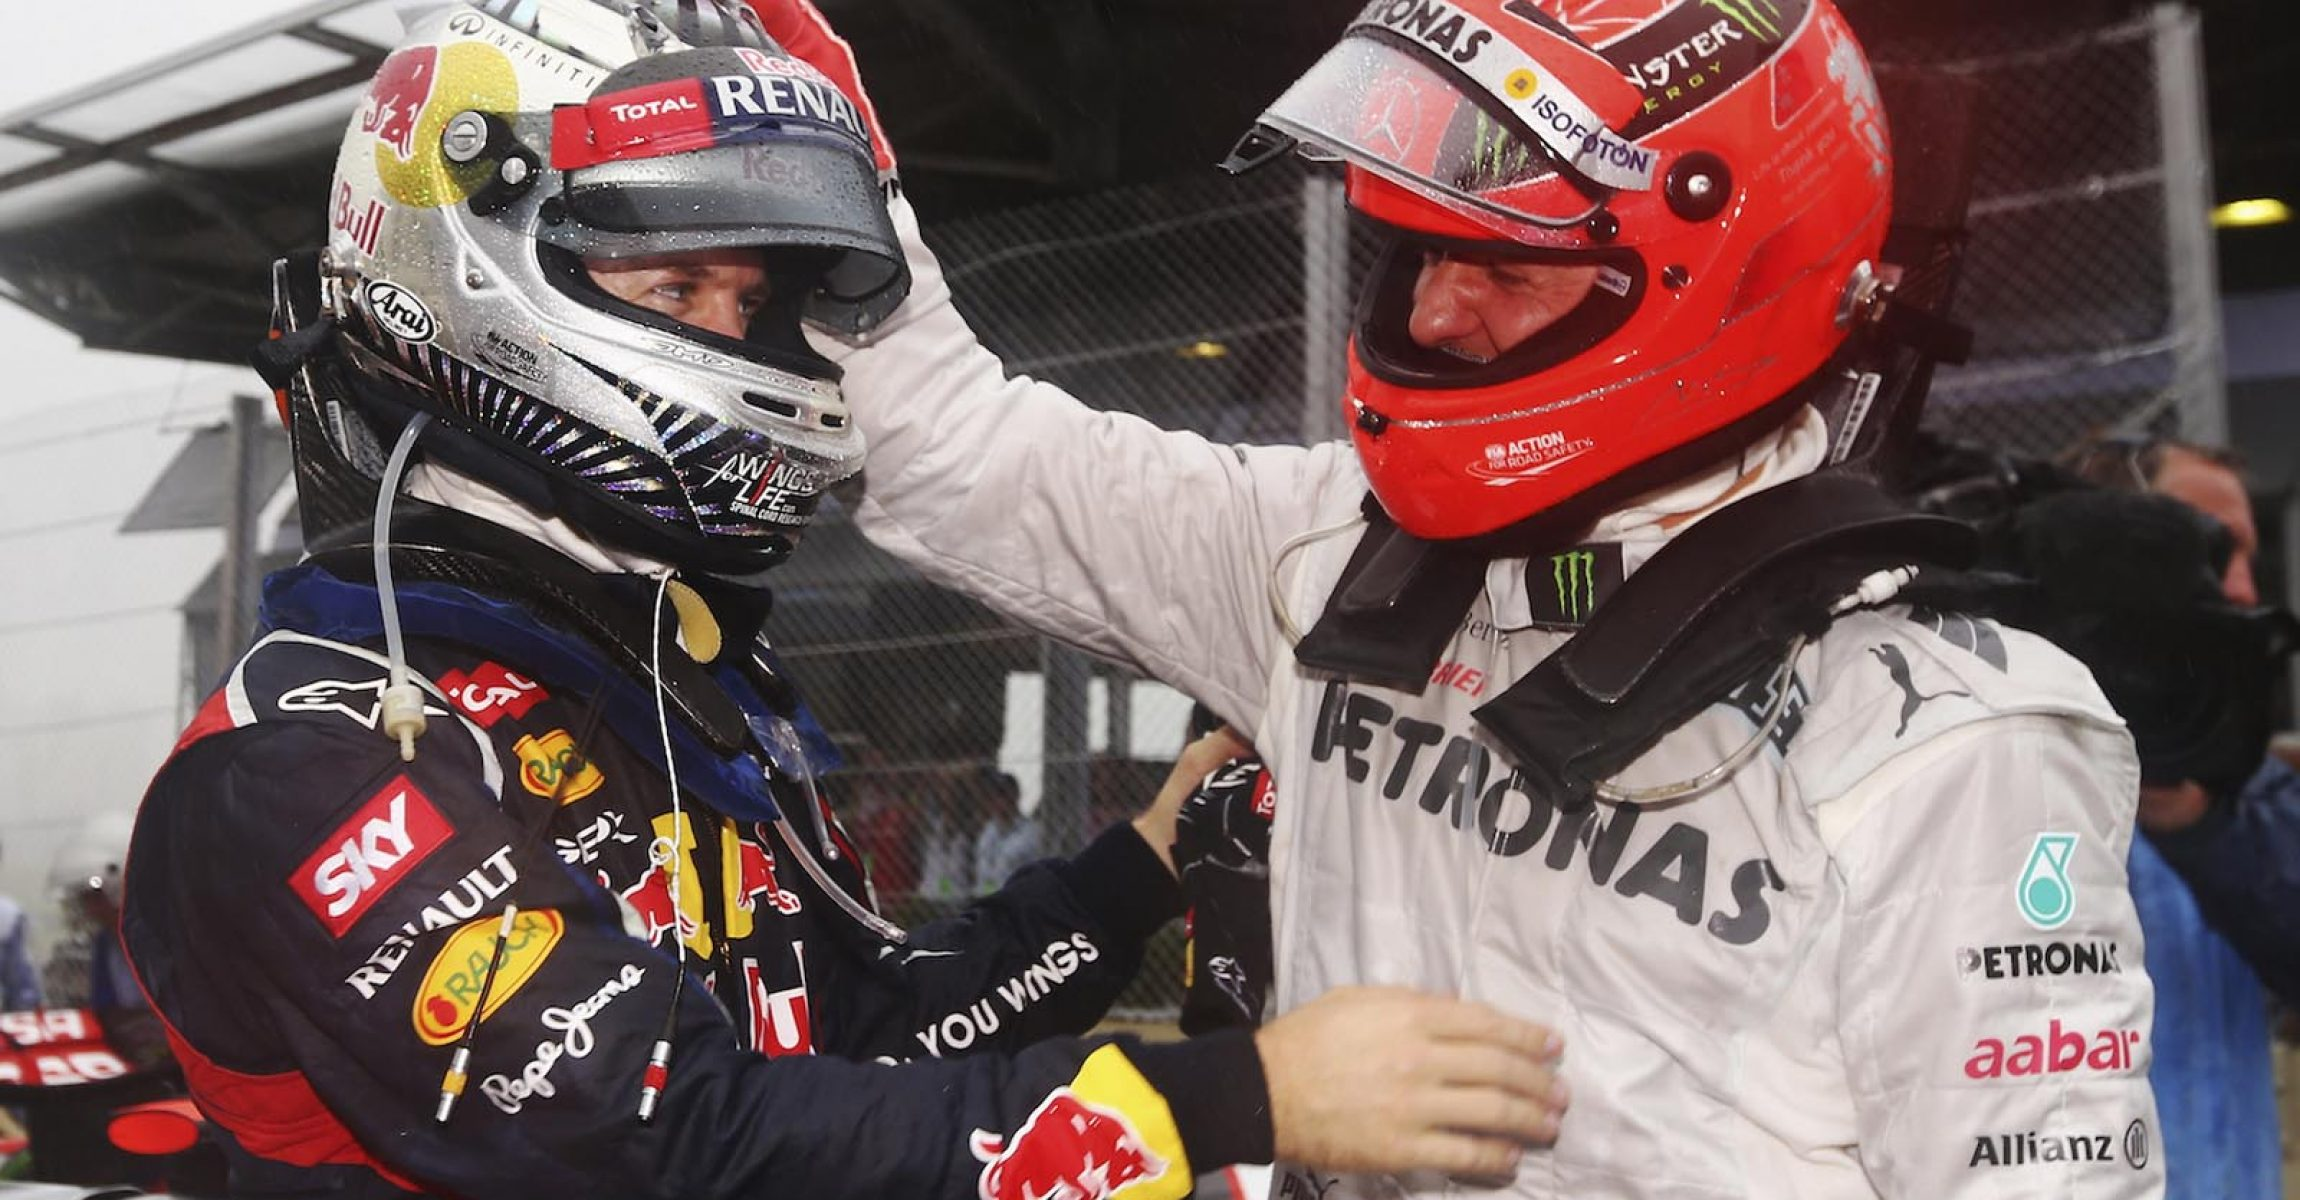 SAO PAULO, BRAZIL - NOVEMBER 25:  Sebastian Vettel of Germany and Red Bull Racing is congratulated by Michael Schumacher of Germany and Mercedes GP in parc ferme as he finishes in sixth position and clinches the drivers world championship during the Brazilian Formula One Grand Prix at the Autodromo Jose Carlos Pace on November 25, 2012 in Sao Paulo, Brazil.  (Photo by Paul Gilham/Getty Images)